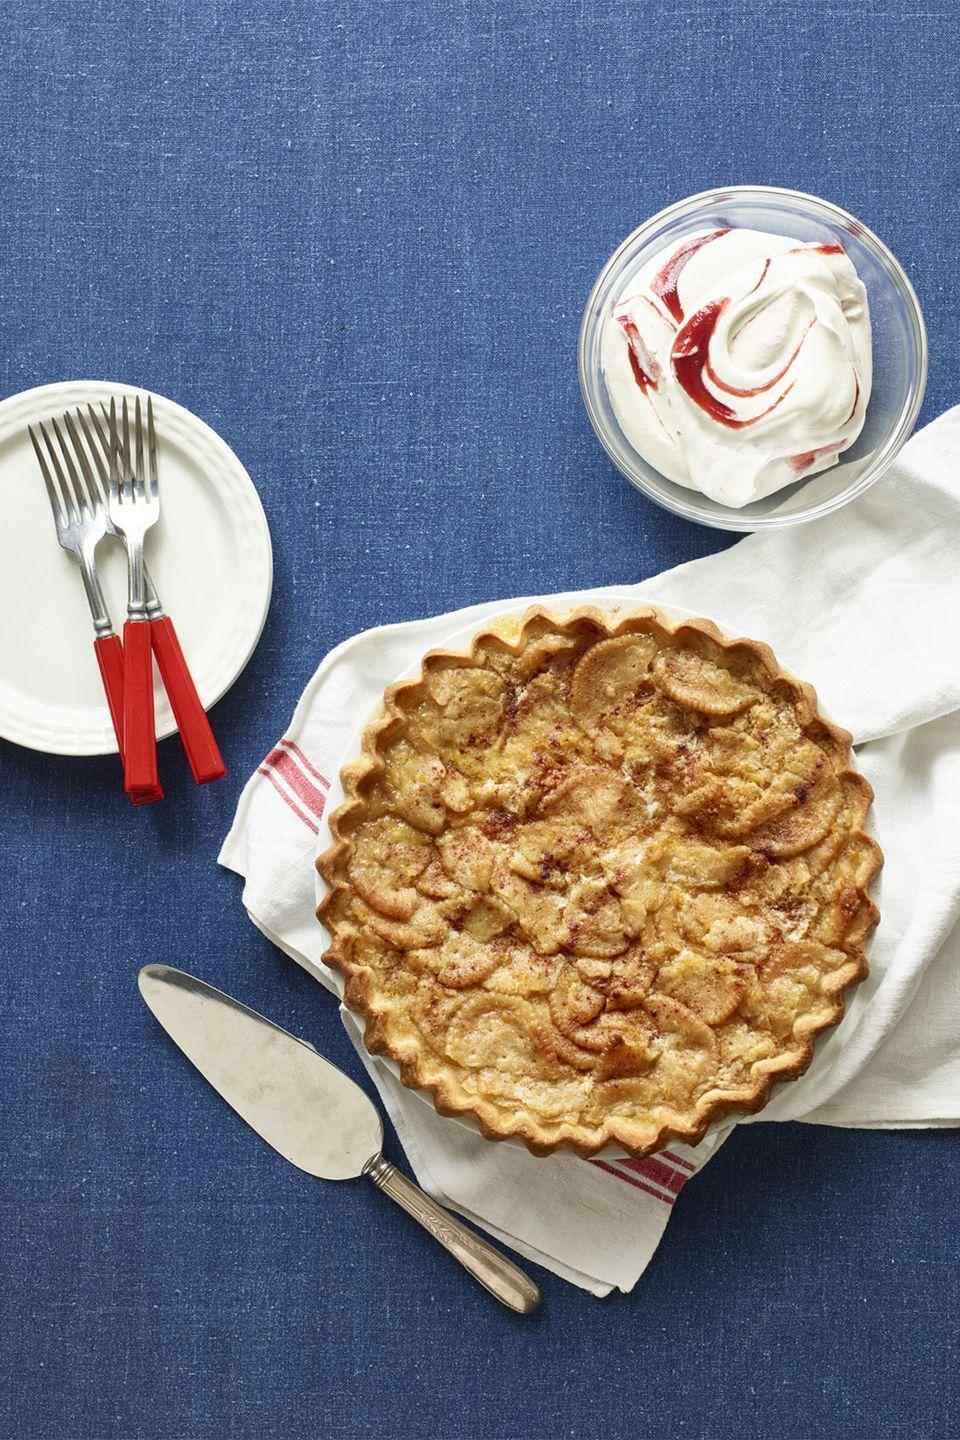 "<p>Looking at this pie, you'd never know apples weren't actually hiding inside. Luckily, no one will miss the fruit once they taste the tangy raspberry-swirled whipped-yogurt topping.<a href=""https://www.womansday.com/food-recipes/recipes/a60229/gingery-mock-apple-pie-recipe/"" rel=""nofollow noopener"" target=""_blank"" data-ylk=""slk:"" class=""link rapid-noclick-resp""><br></a></p><p><strong><em><a href=""https://www.womansday.com/food-recipes/recipes/a60229/gingery-mock-apple-pie-recipe/"" rel=""nofollow noopener"" target=""_blank"" data-ylk=""slk:Get the Gingery Mock Apple Pie recipe."" class=""link rapid-noclick-resp"">Get the Gingery Mock Apple Pie recipe. </a></em></strong></p>"